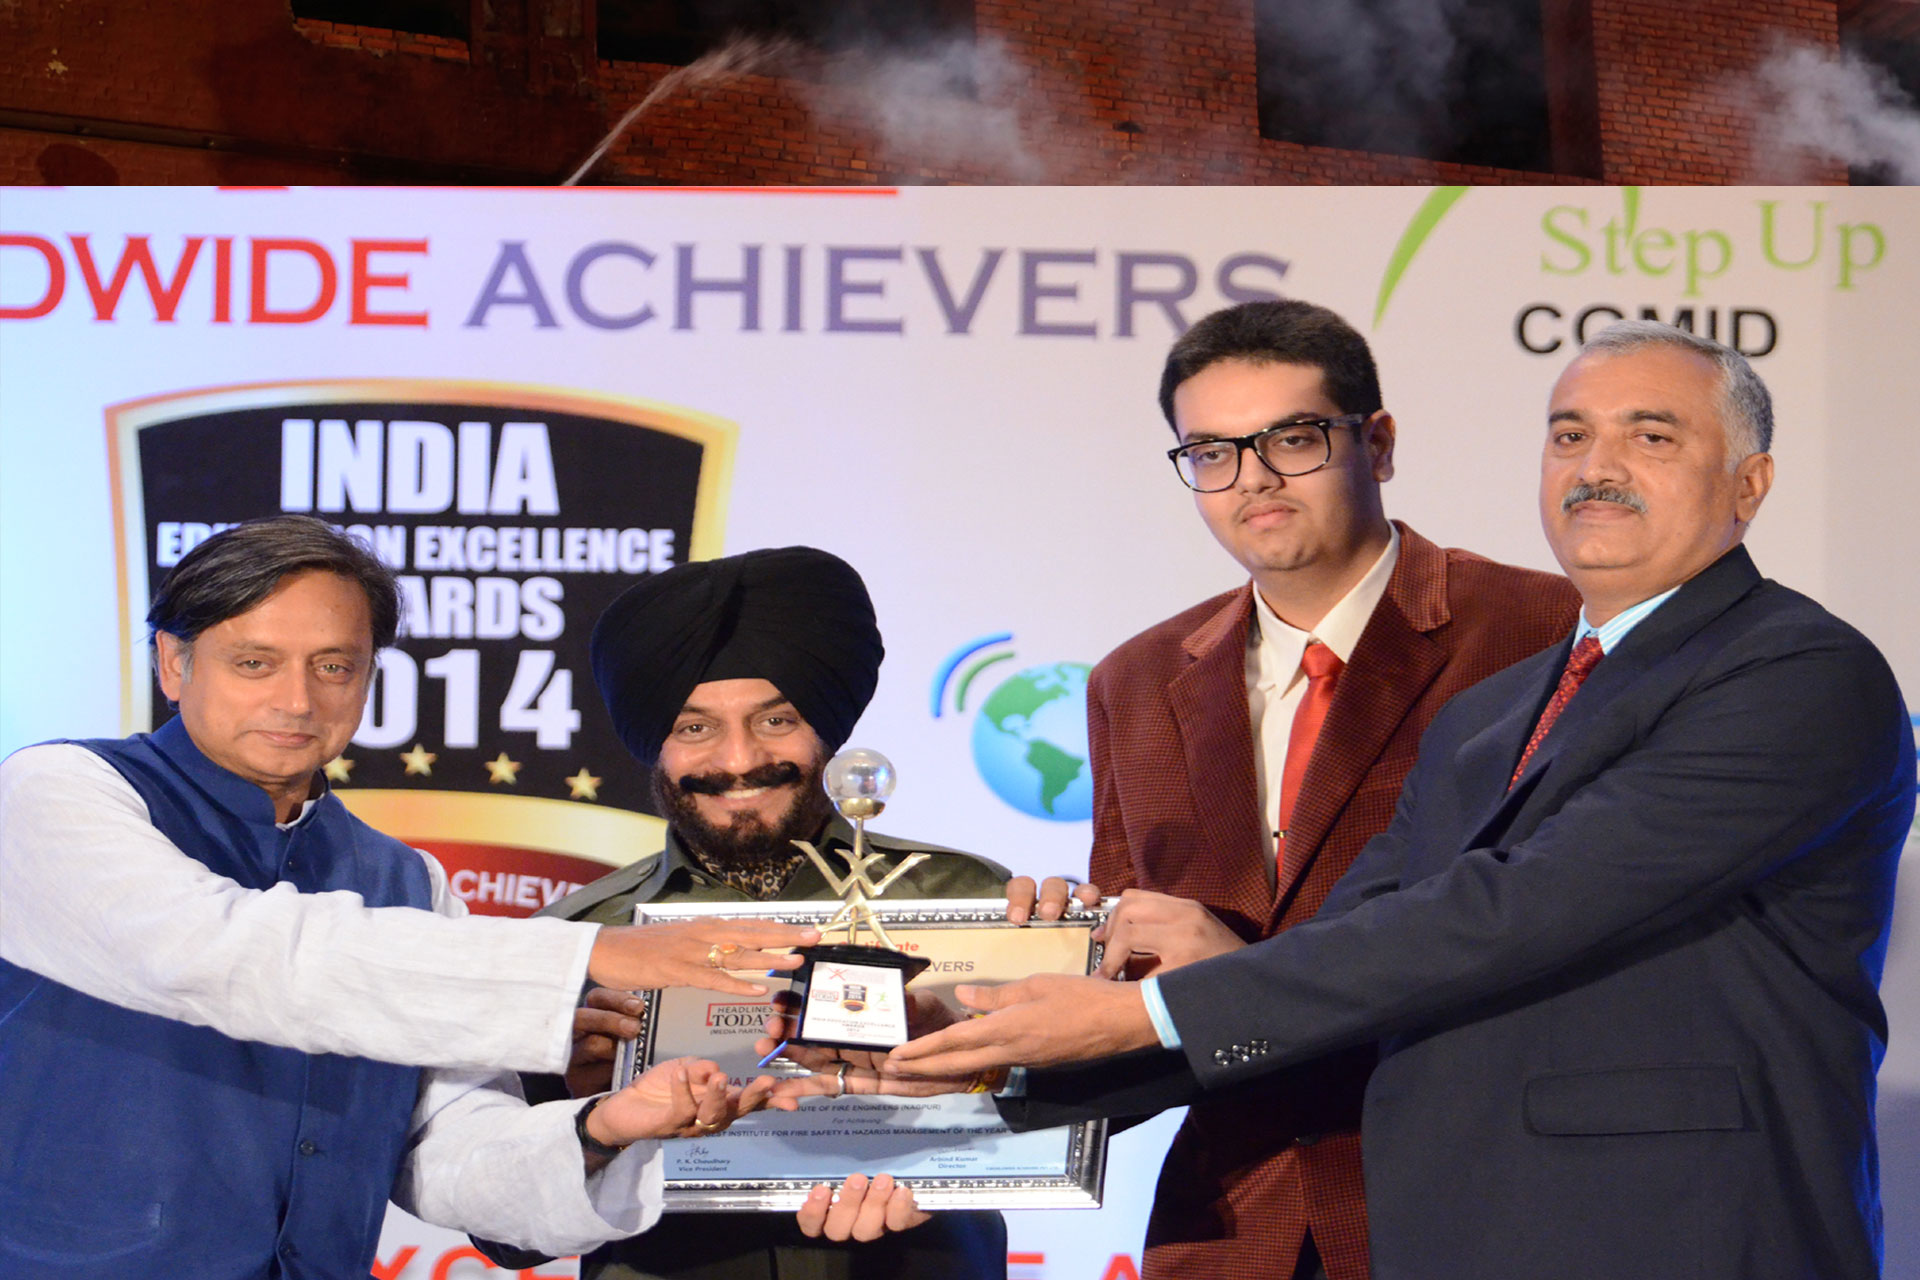 IFE Awarded INDIA EDUCATION EXCELLENCE AWARDS 2014 by H.R.D. Minister Govt. of India in New Delhi